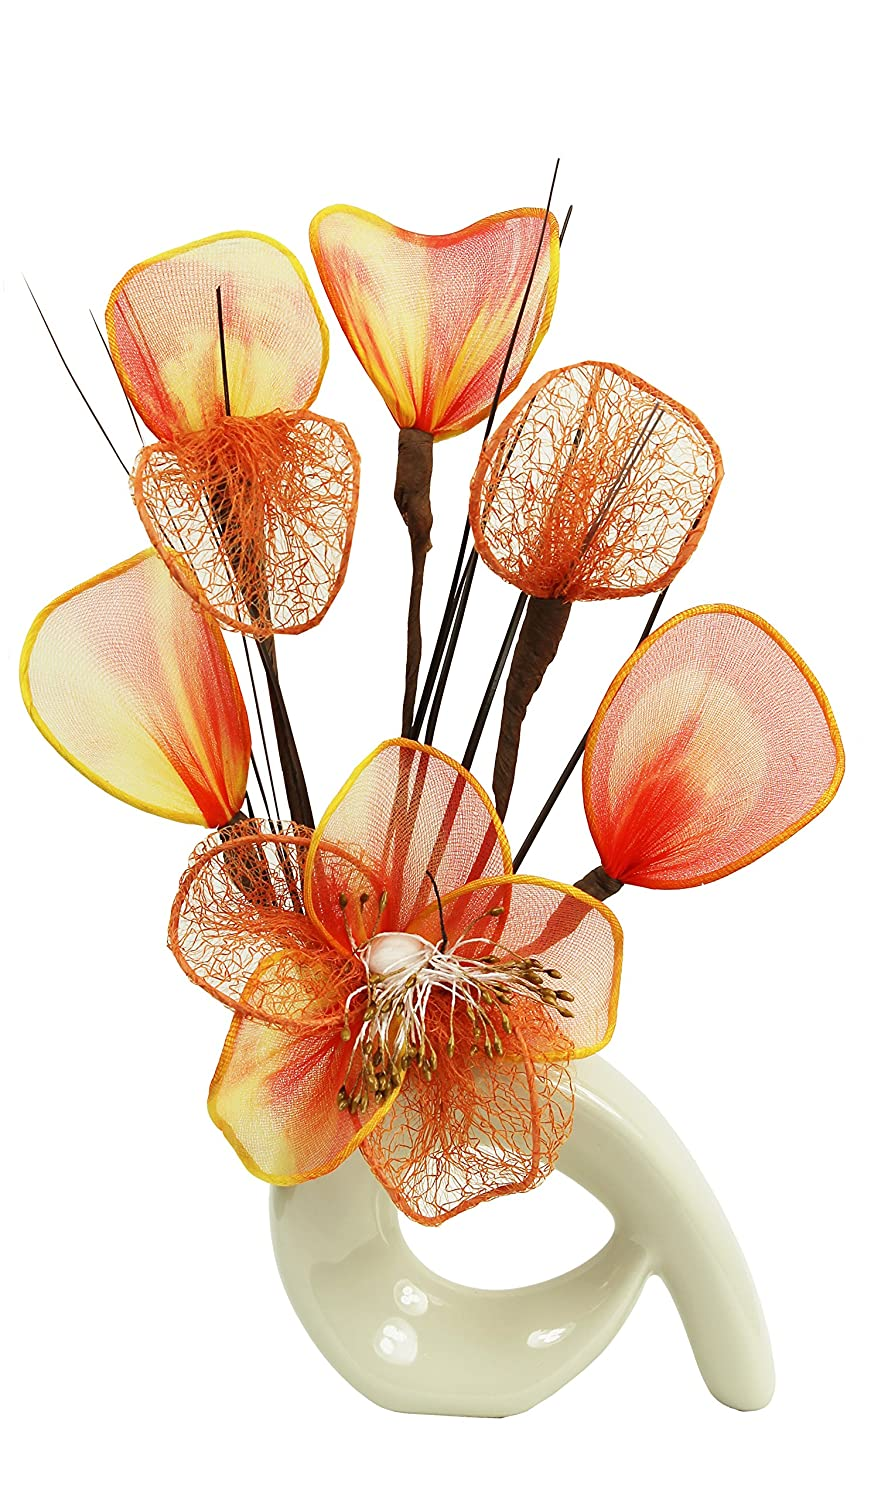 Cream Vase with Orange Artificial Flowers, Home Accessories, Ornaments for Living Room, Window Sill, 32cm Flourish 792916